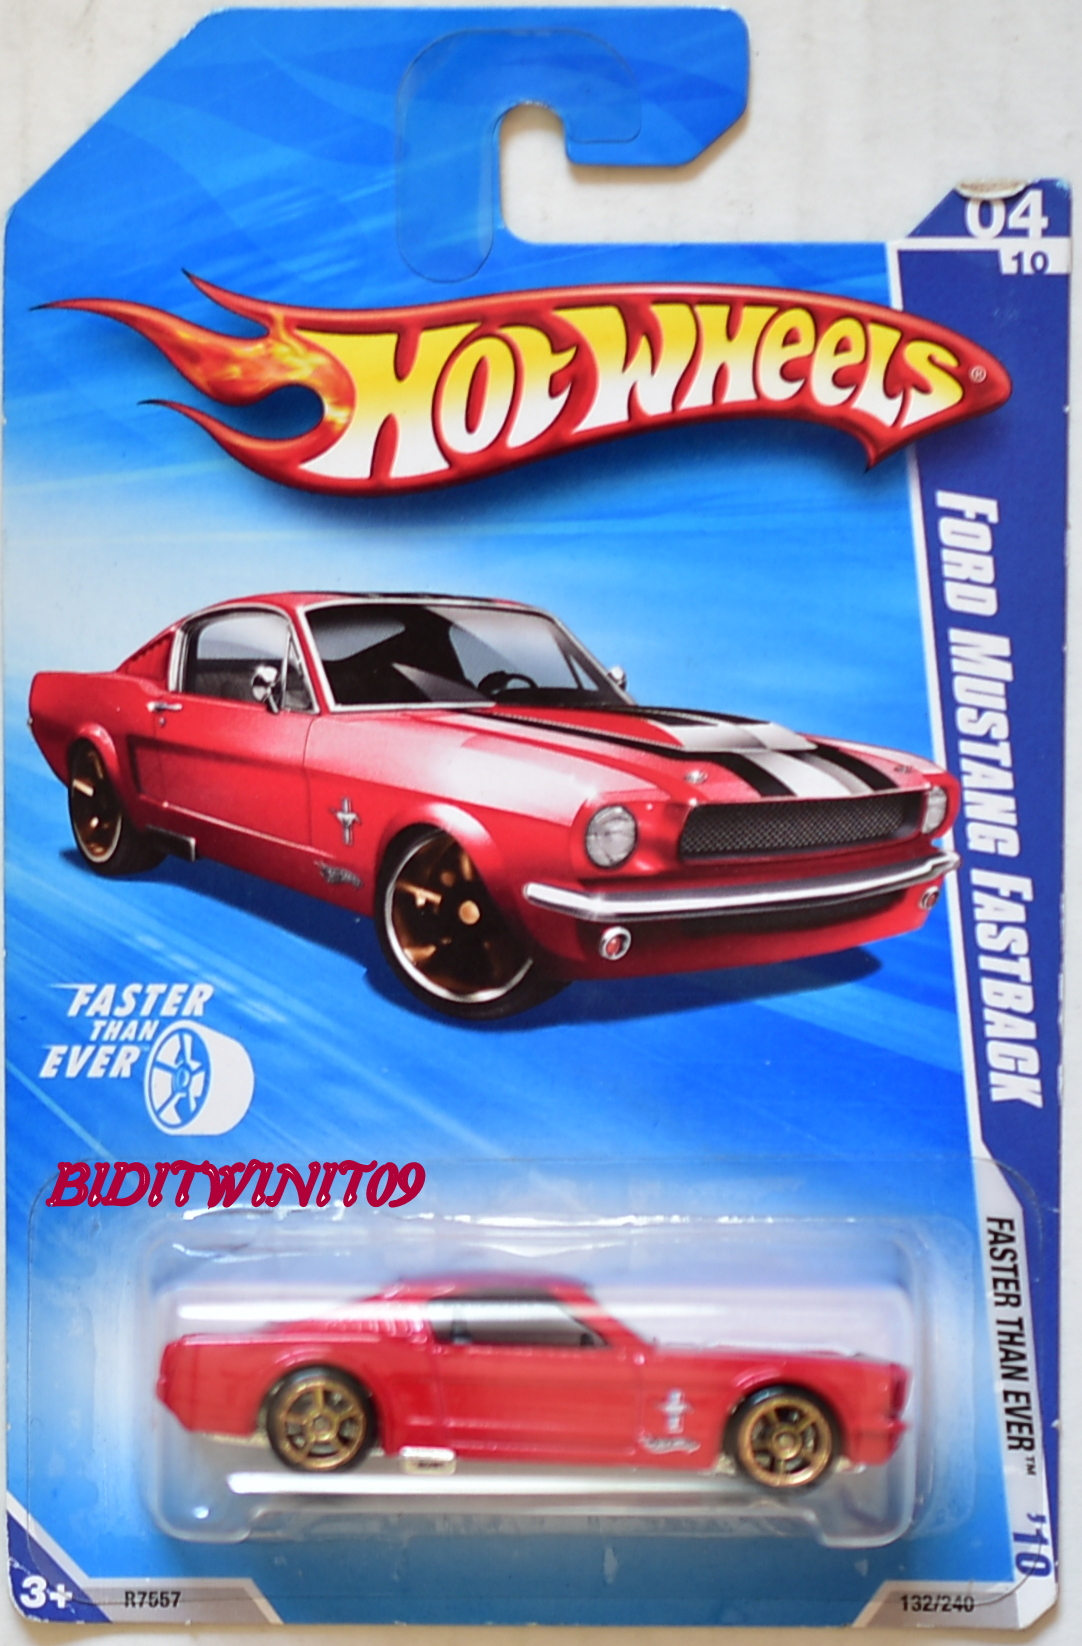 HOT WHEELS 2010 FASTER THAN EVER FORD MUSTANG FASTBACK #04/10 RED E+